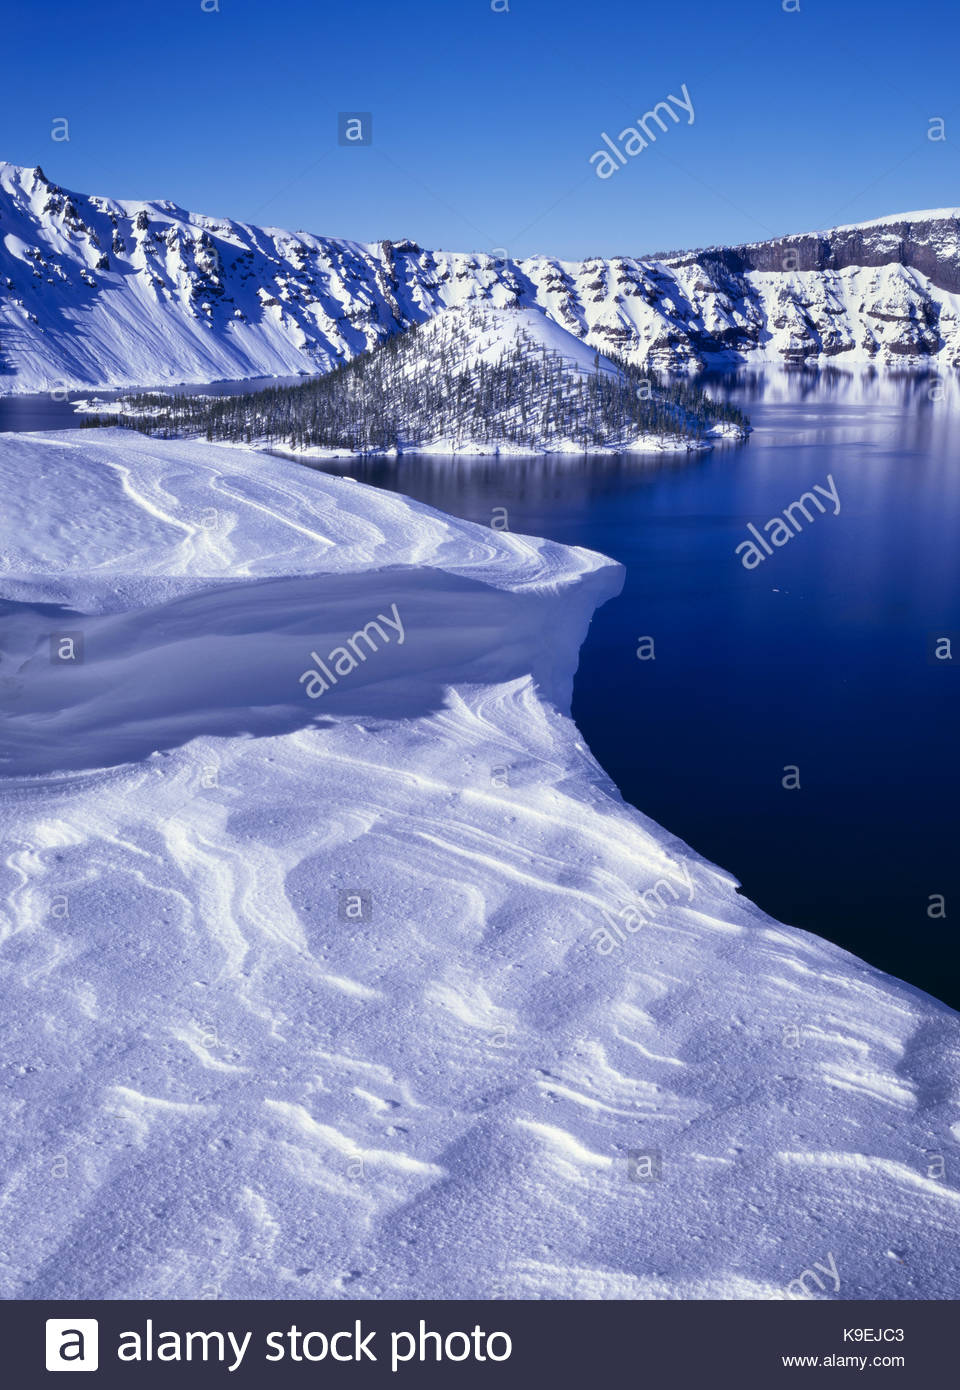 Snow Cornice and Wizard Island, Crater Lake National Park, Oregon - Stock Image